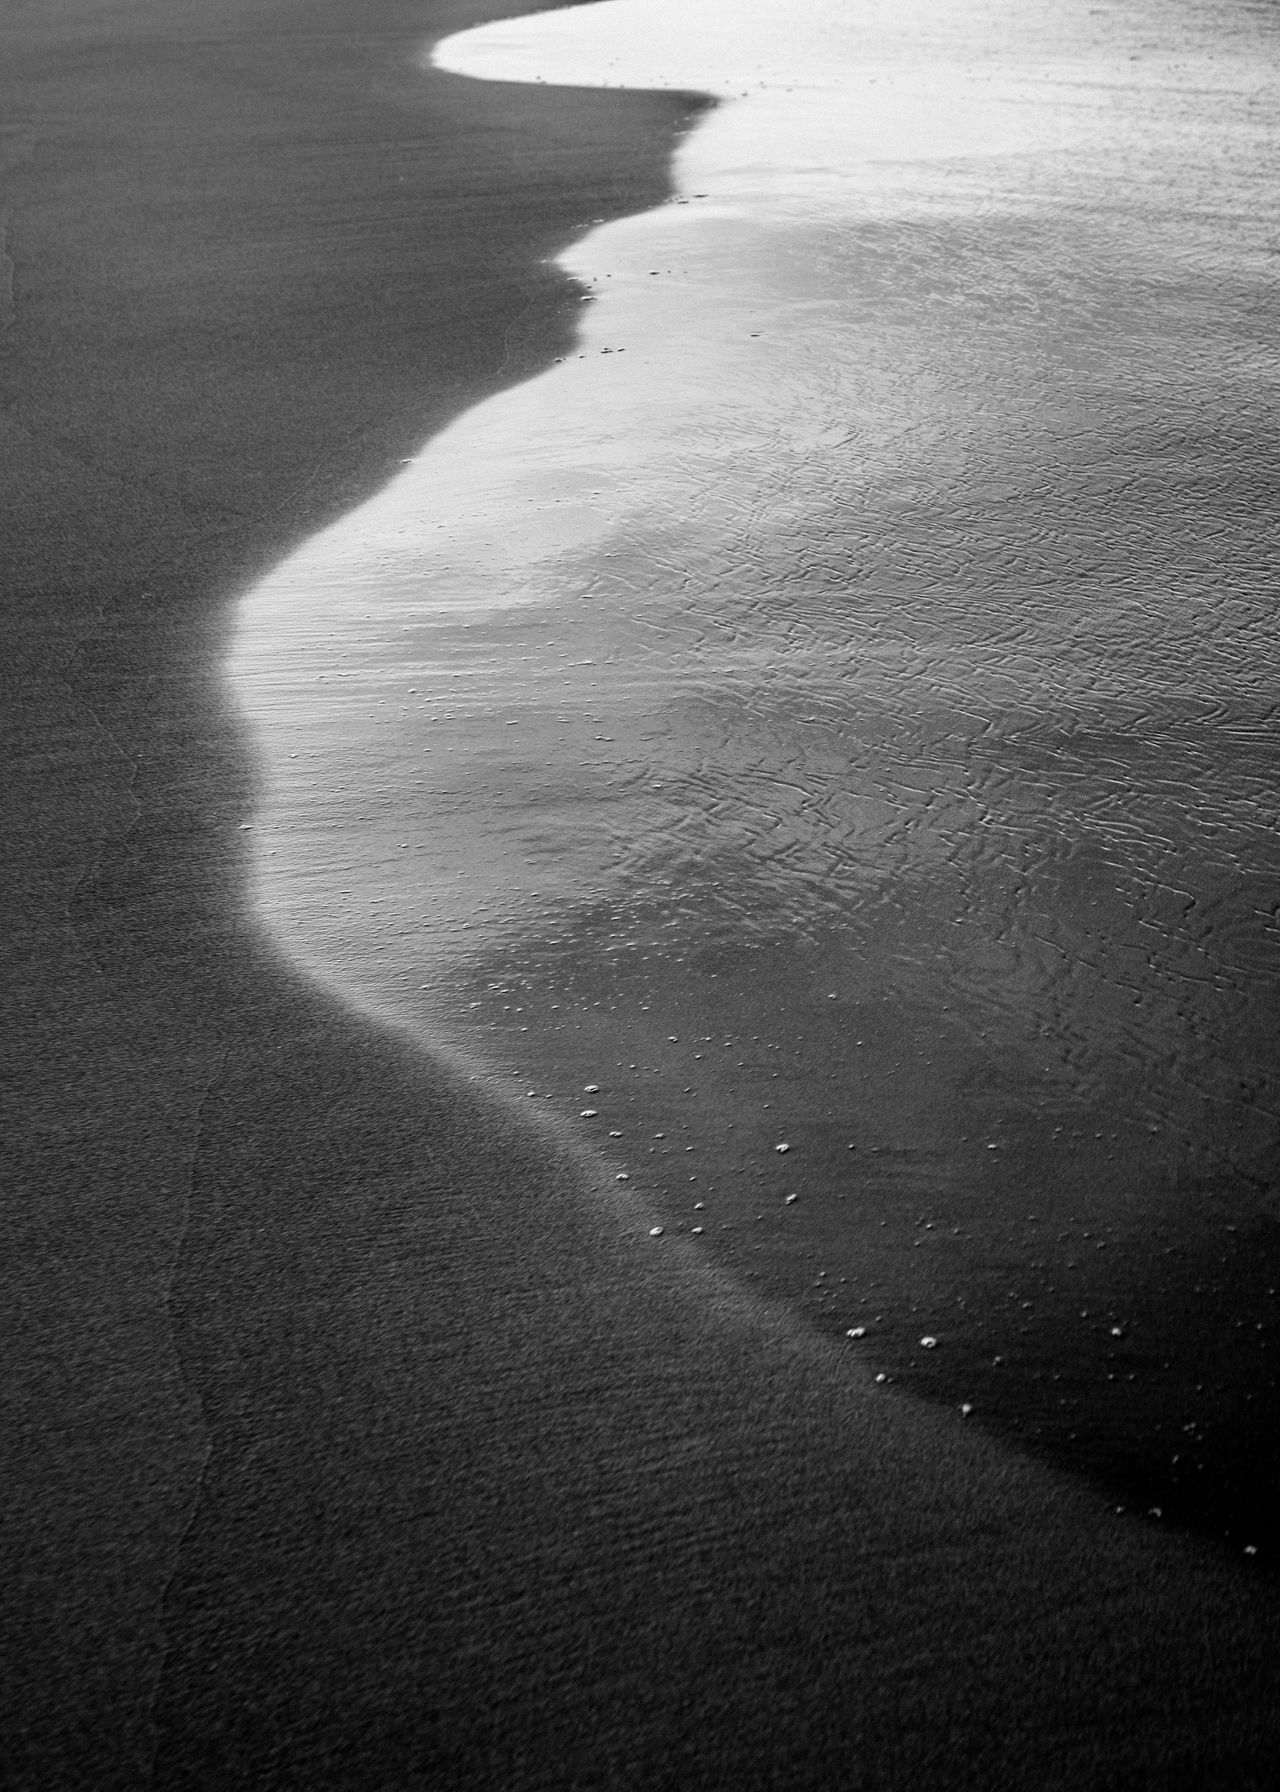 Abstract Photography Beach Beach Photography Beauty In Nature Black And White Photography Blackandwhite Day Nature Nature Photography Nature_collection No People Outdoors Sand Scenics Sea Shadow Sunlight Tranquility Water Water Reflections Water_collection Waves, Ocean, Nature